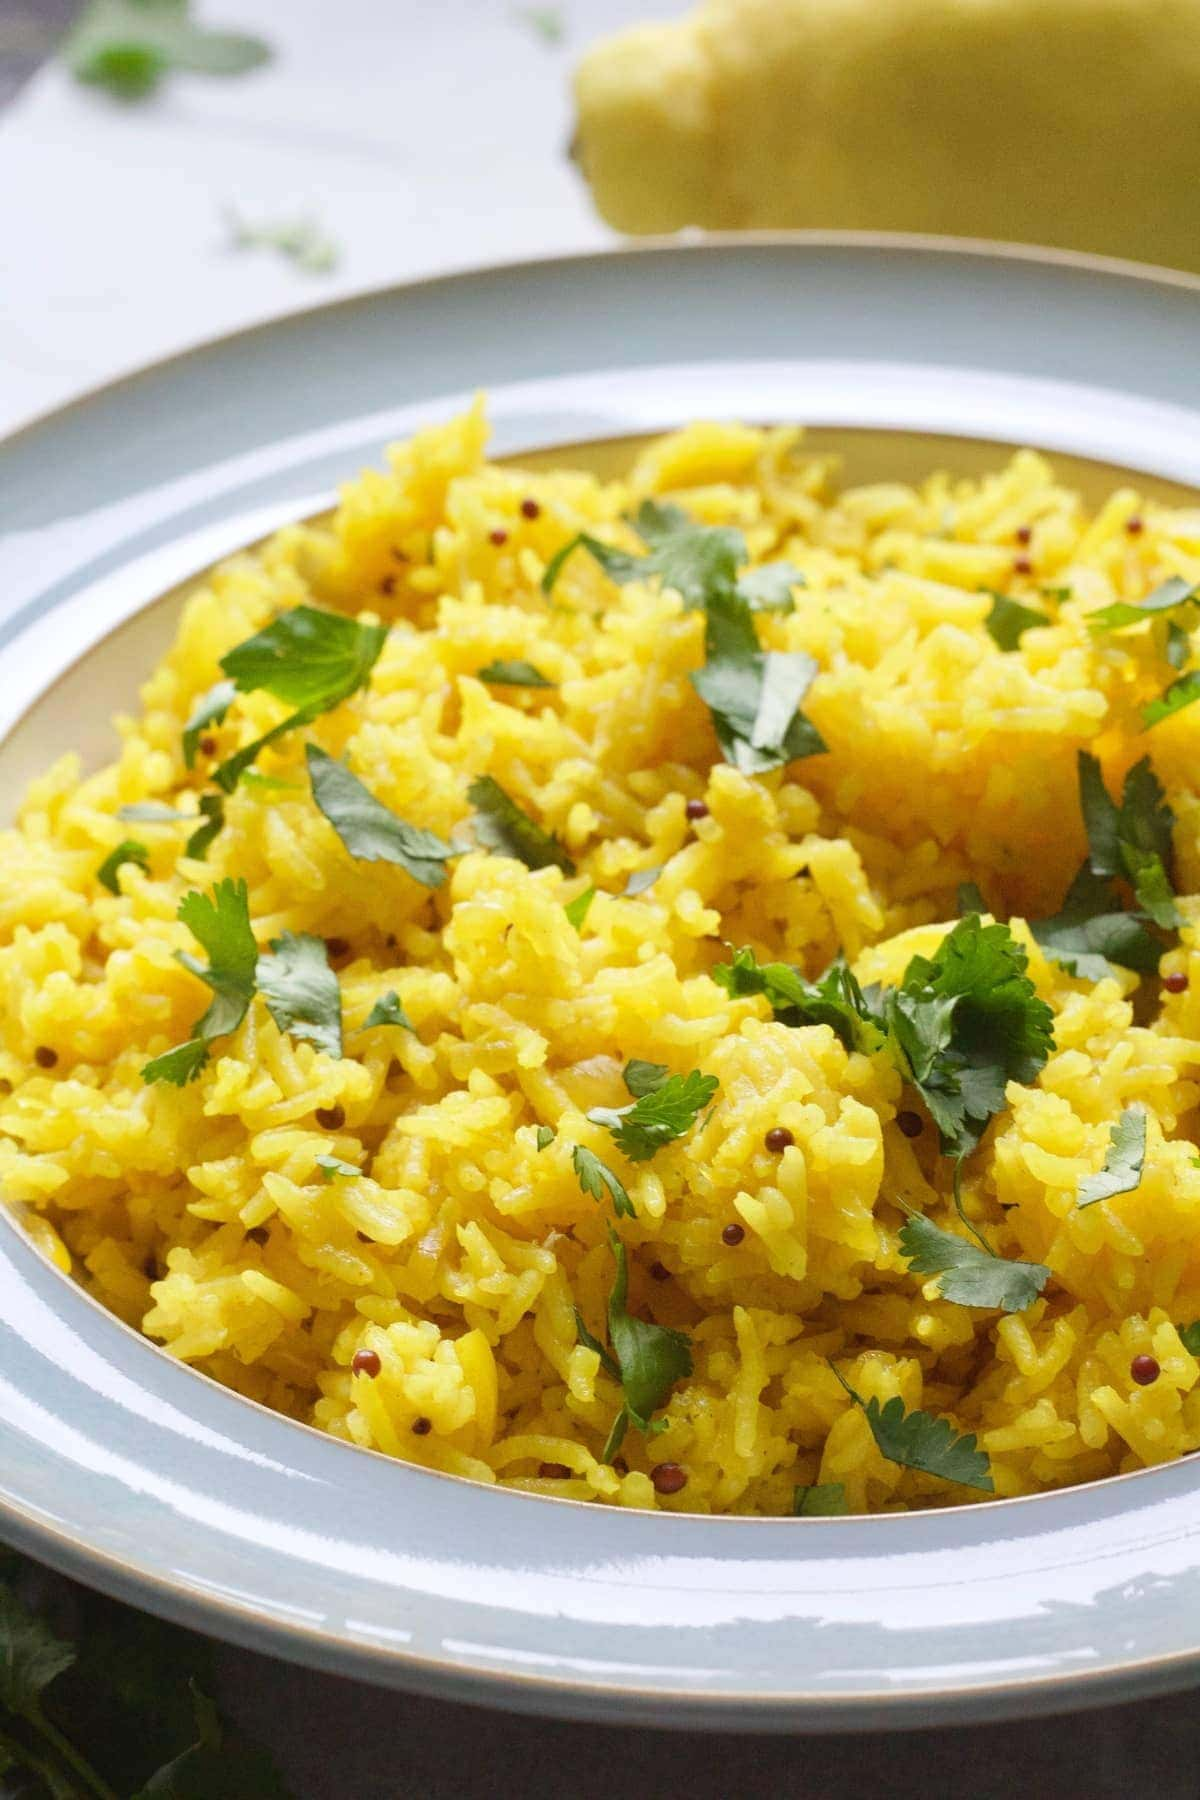 Yellow rice in a bowl with coriander garnish.